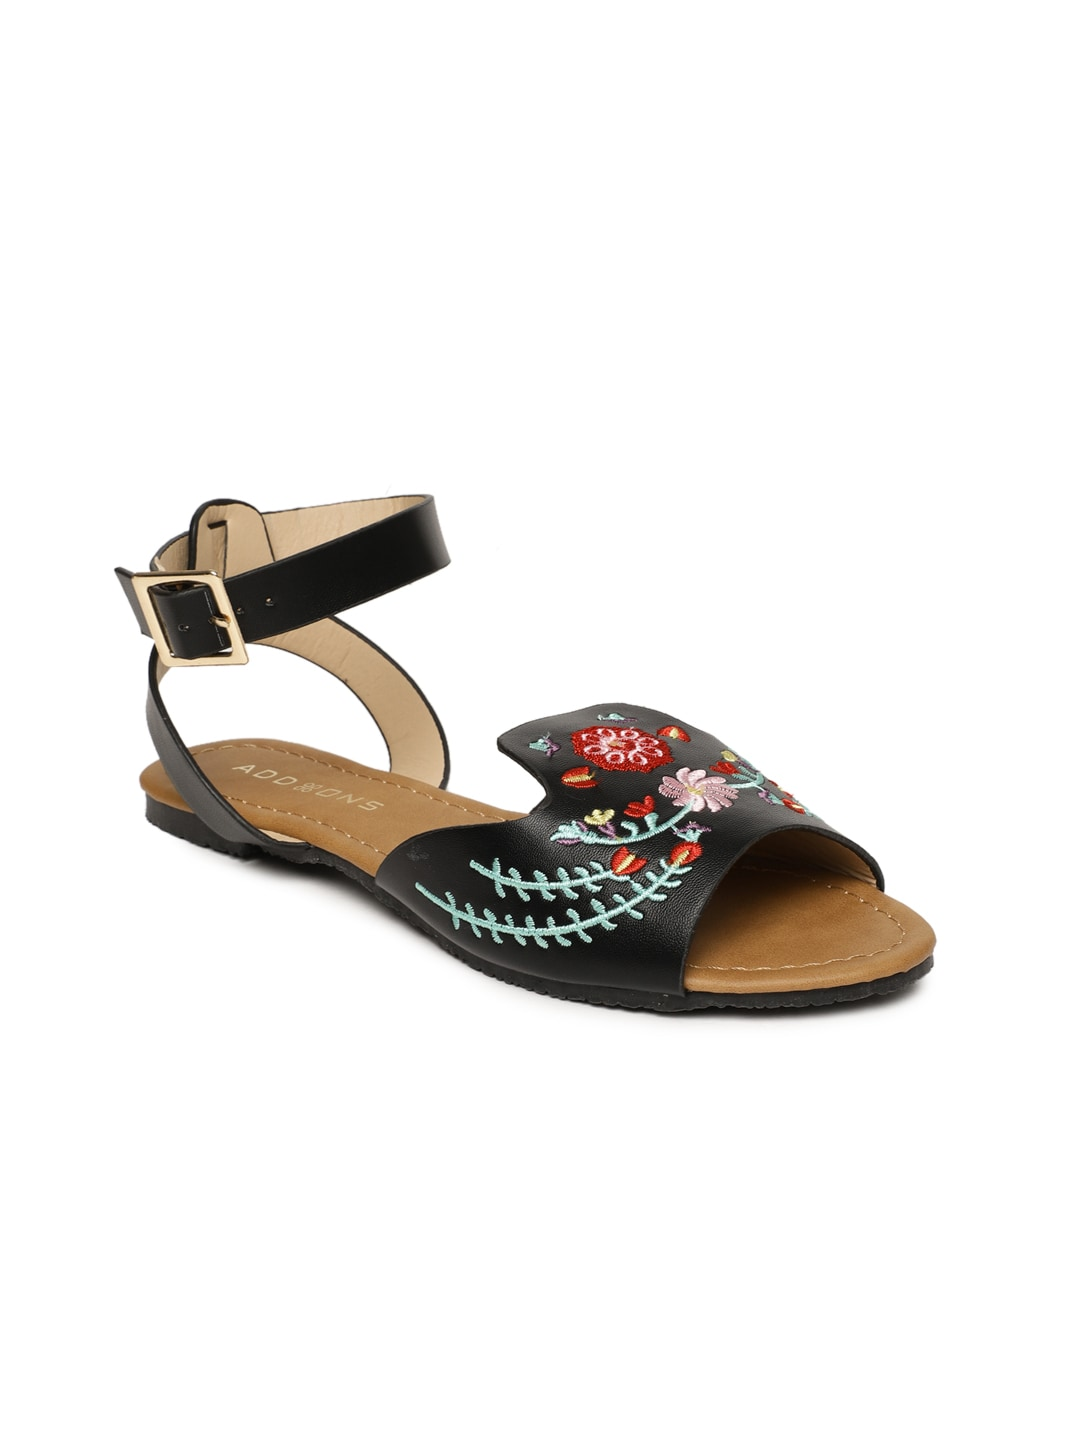 6dfc949c39522 Toe Shoes - Buy Toe Shoes online in India